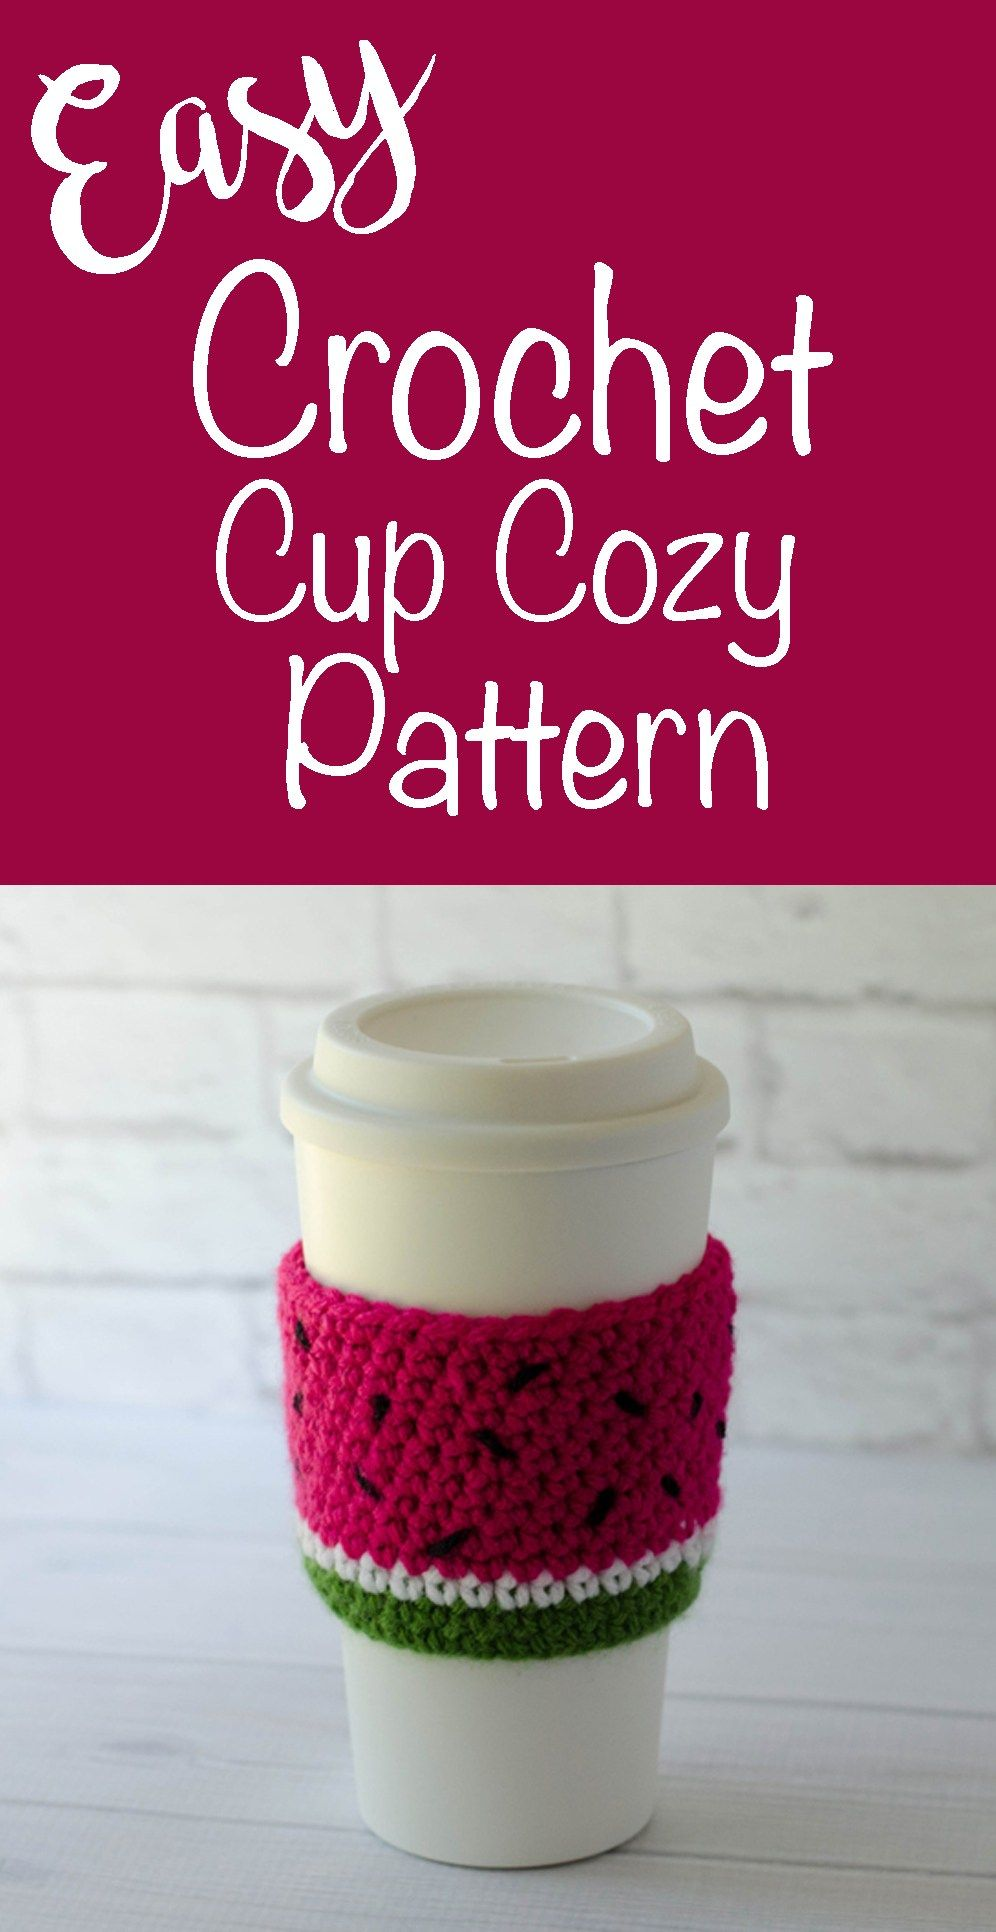 Watermelon Cup Cozy | Cozy, Cups and Crochet